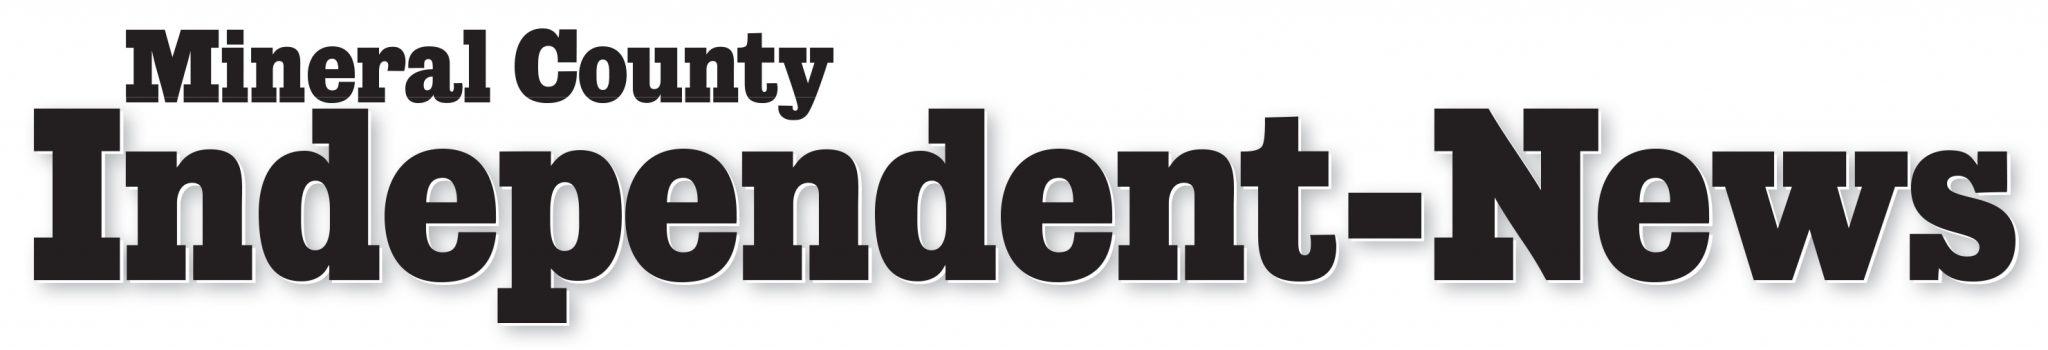 Mineral County Independent News